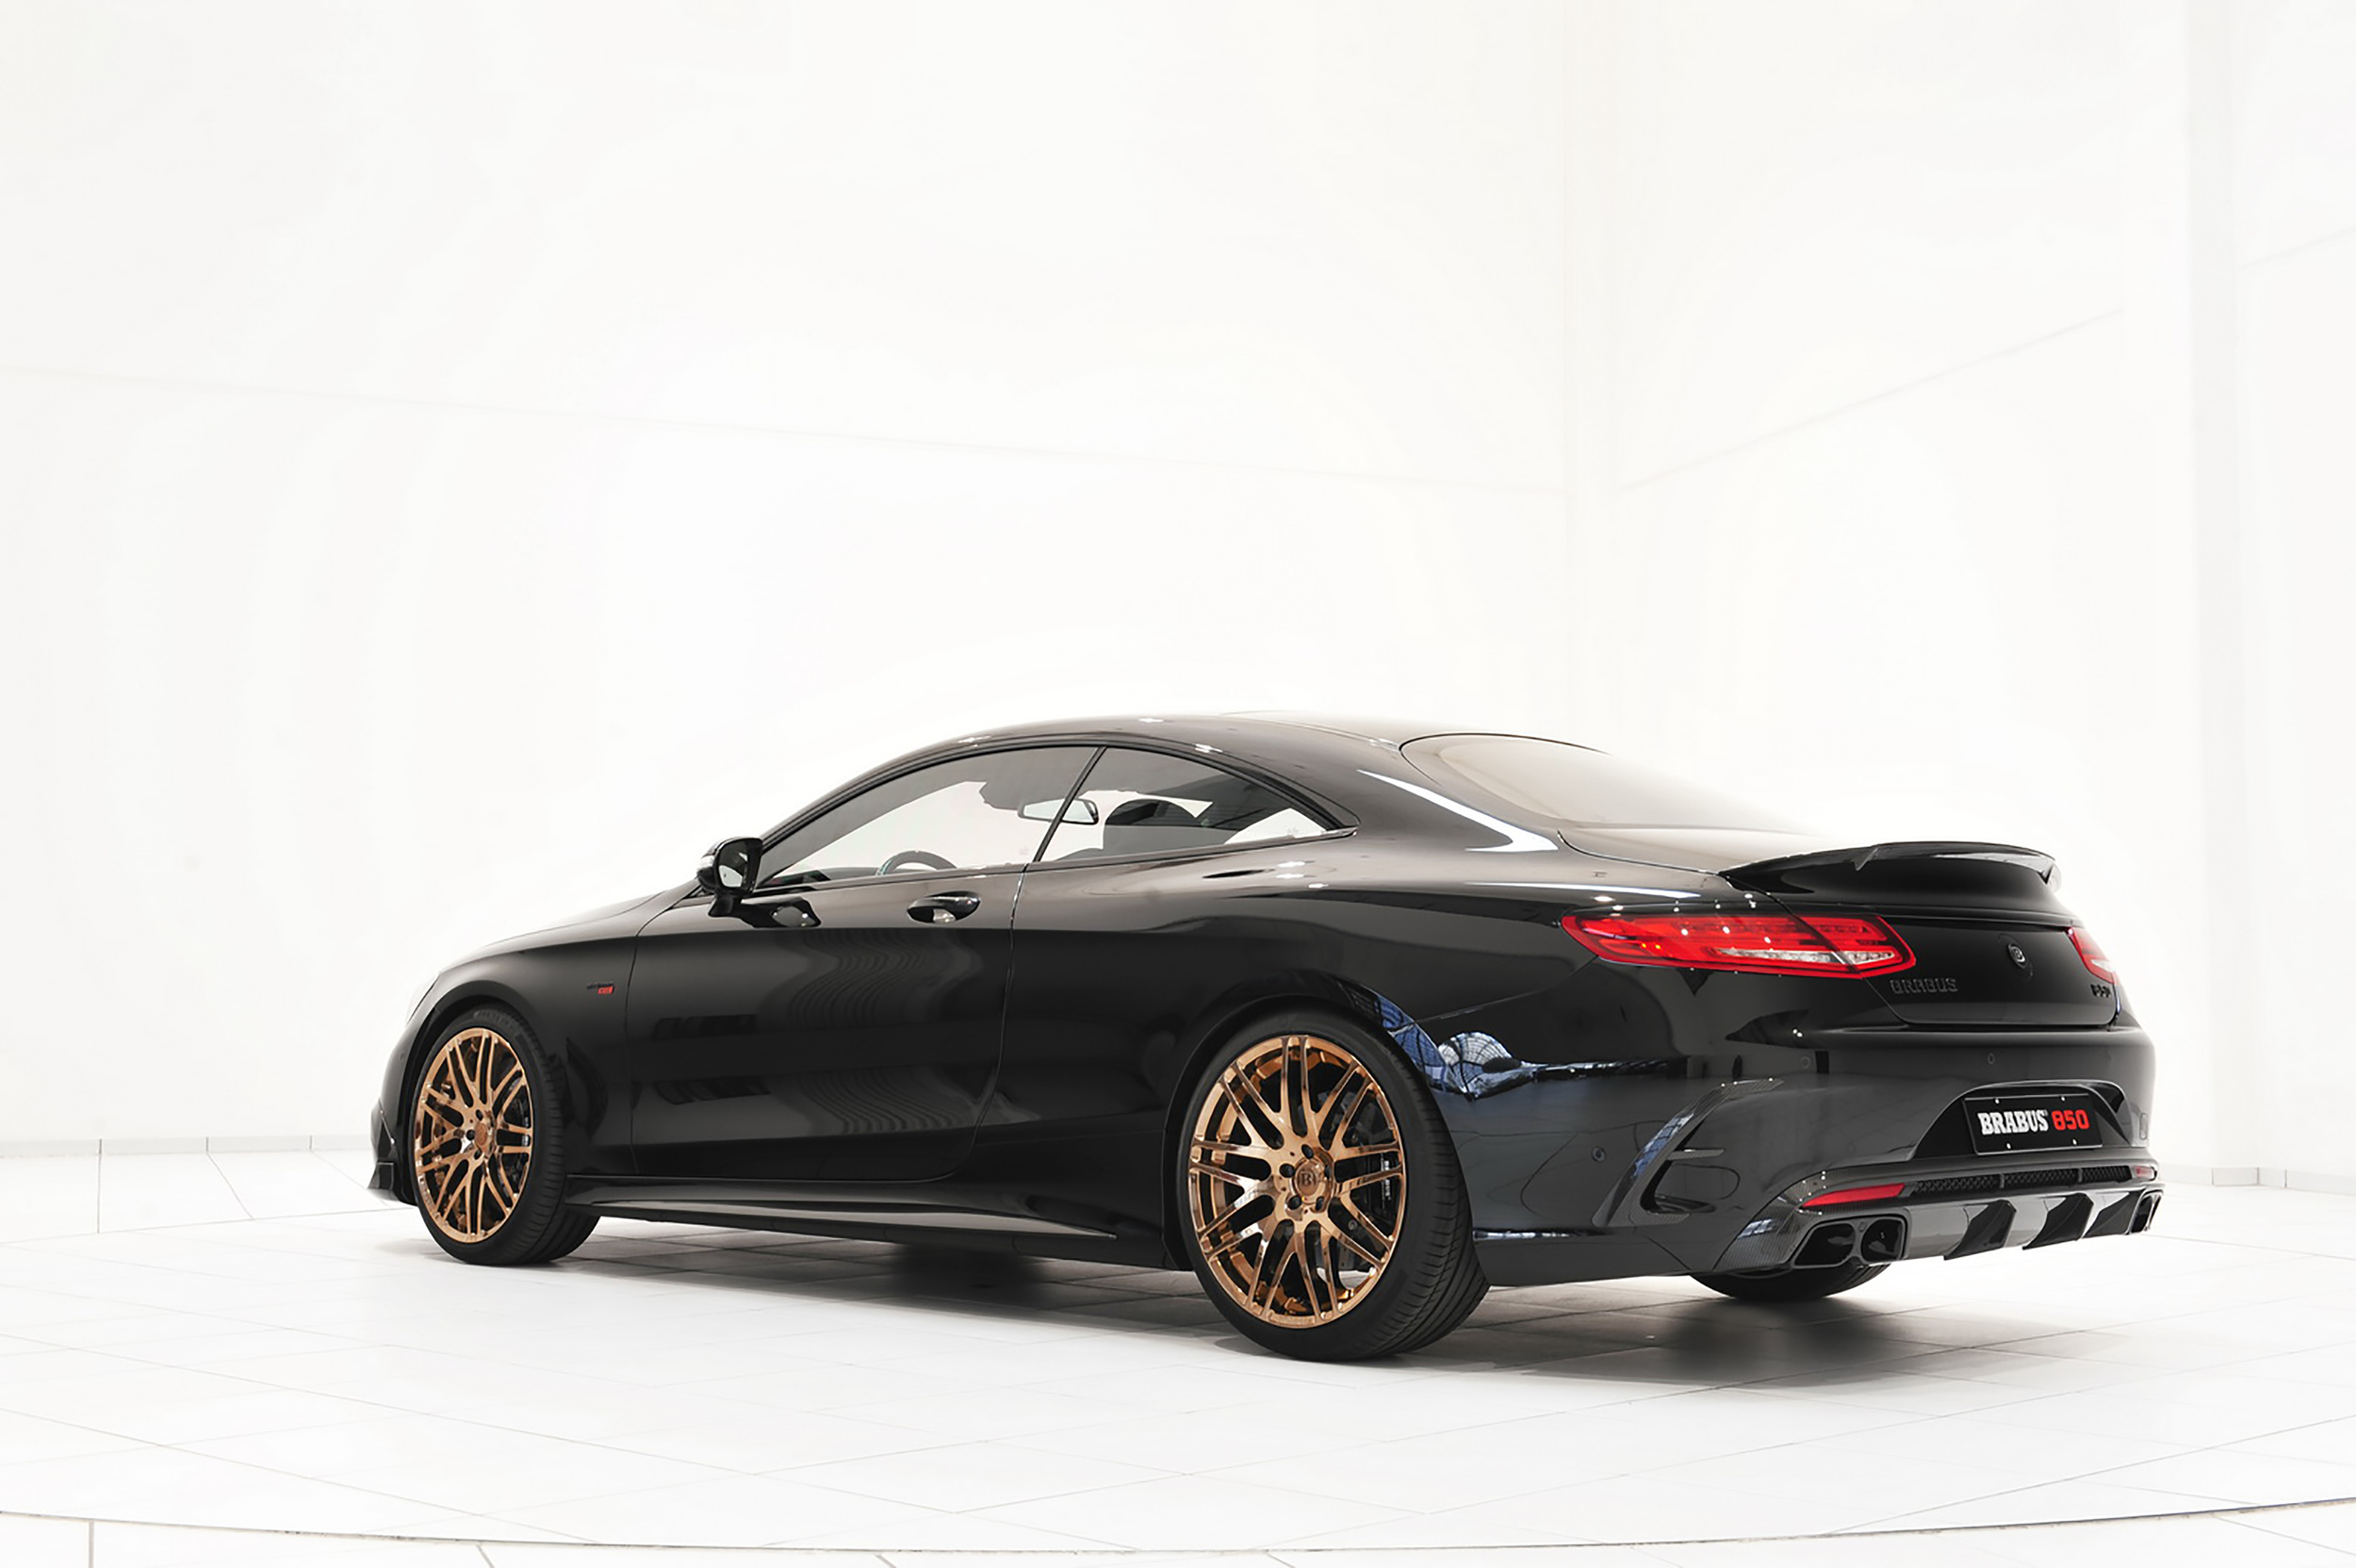 ' ' from the web at 'http://www.blogcdn.com/slideshows/images/slides/335/948/6/S3359486/slug/l/brabus-s-class-coupe-17-1.jpg'